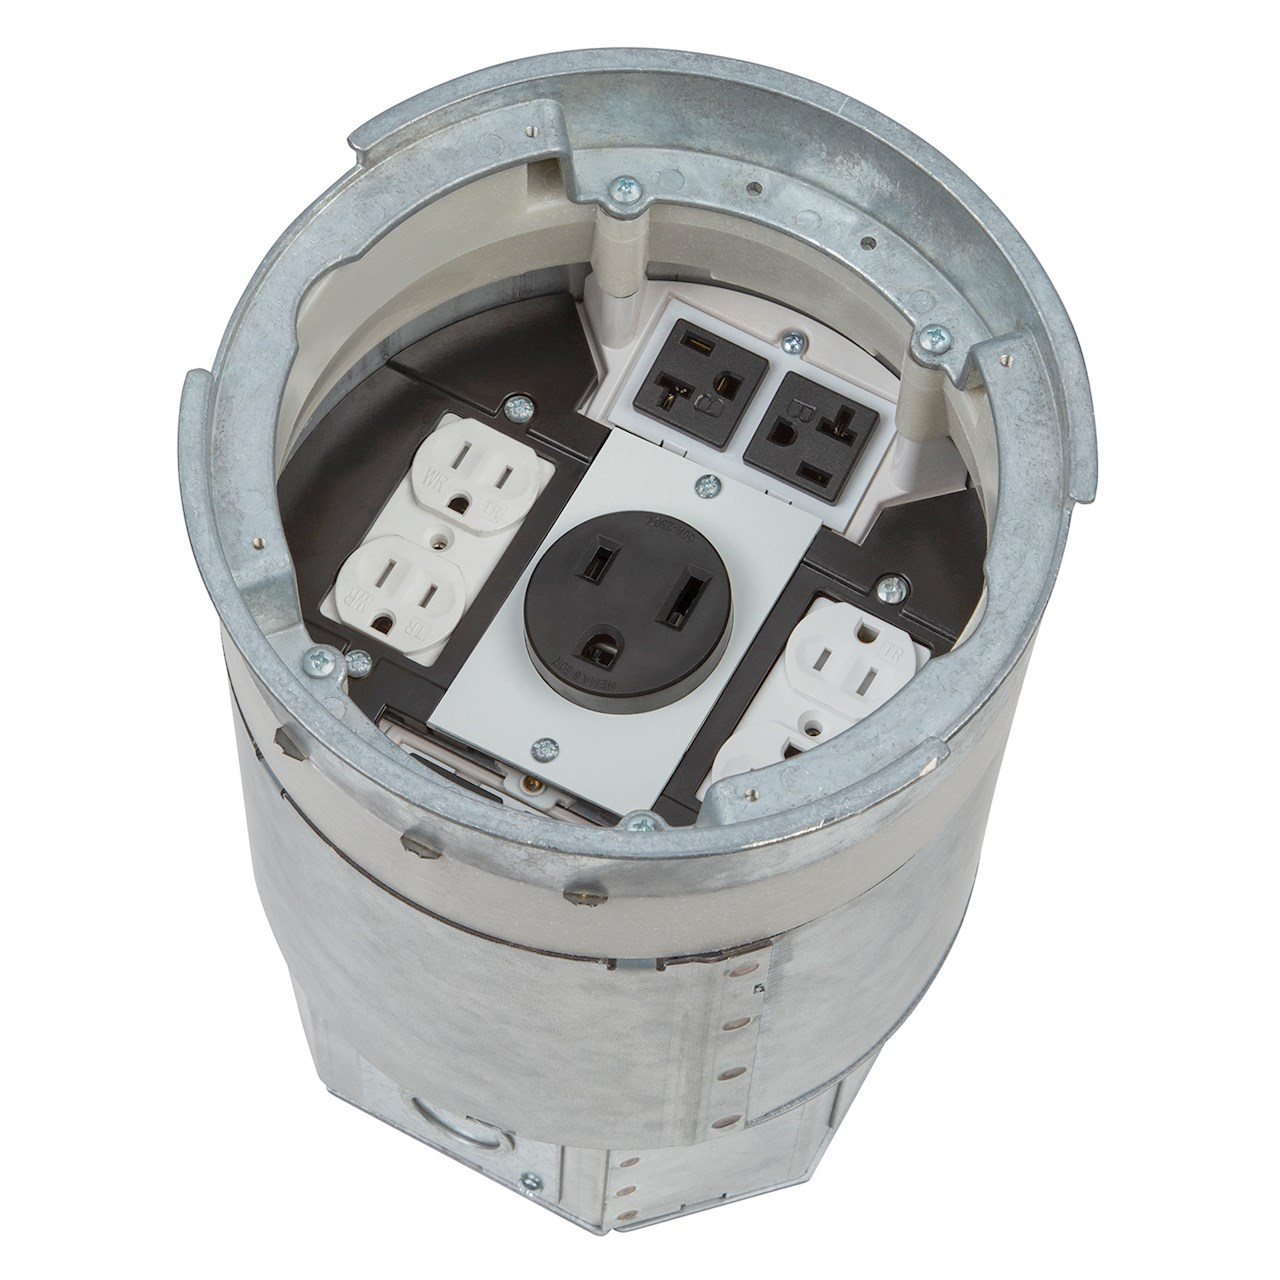 ABB's Steel City® 8-inch recessed poke-through (RPT8) floor box